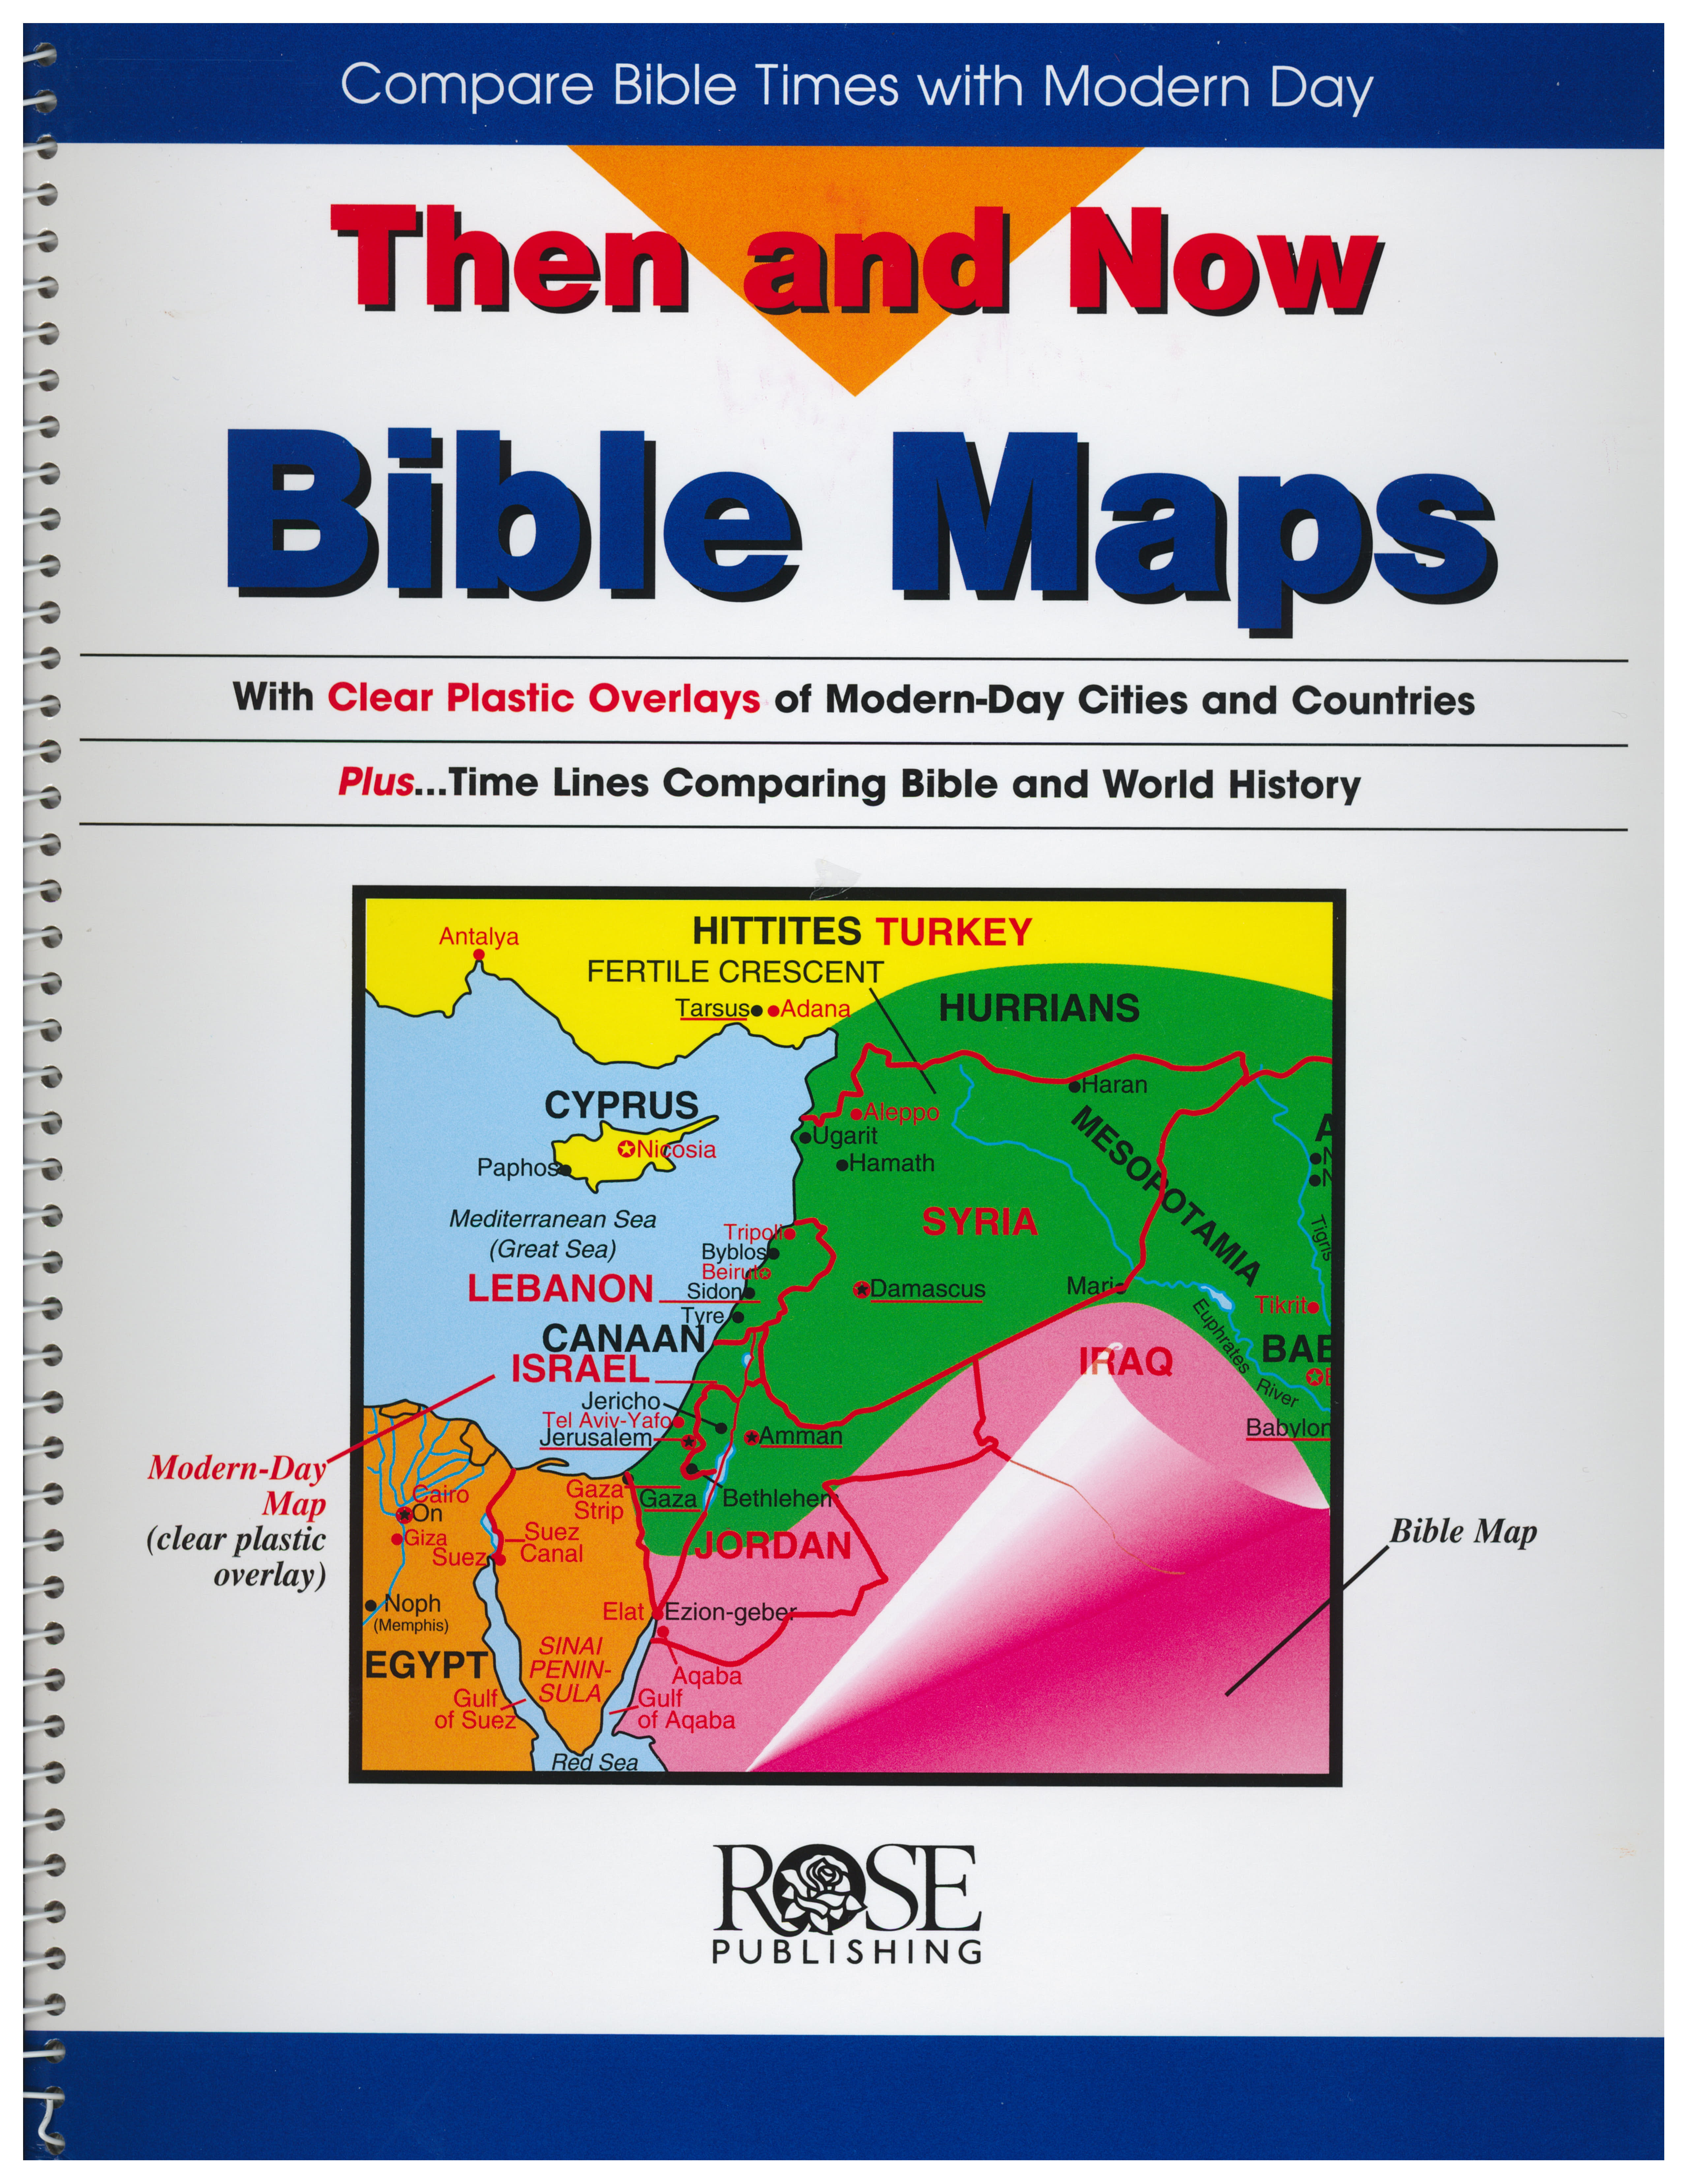 Then and Now Bible Maps from Rose Publishing 108-9780965508209